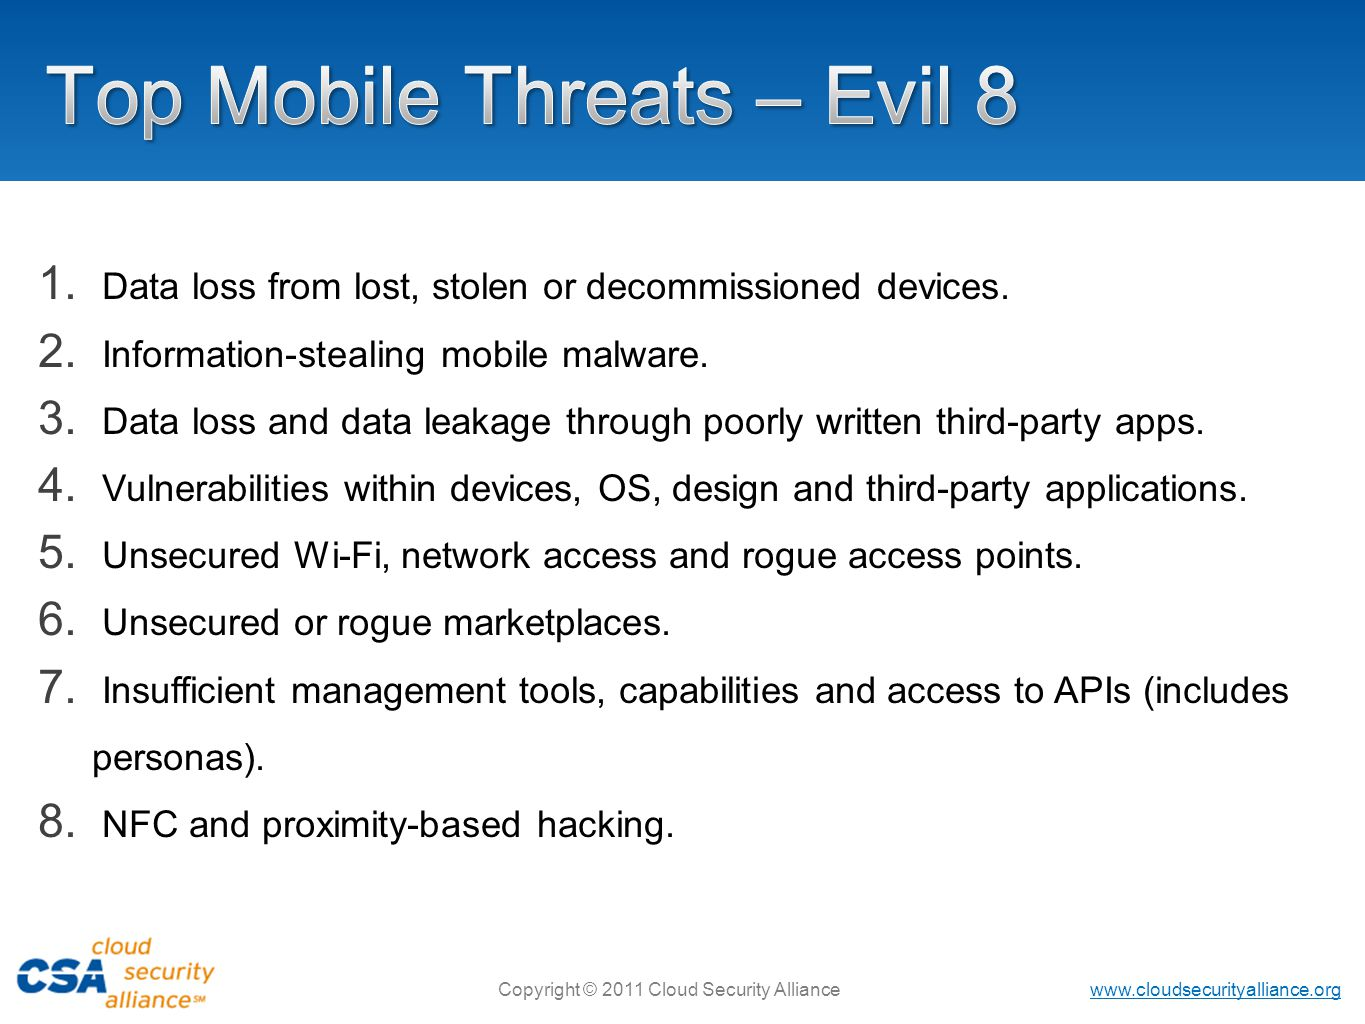 Top Mobile Threats – Evil 8